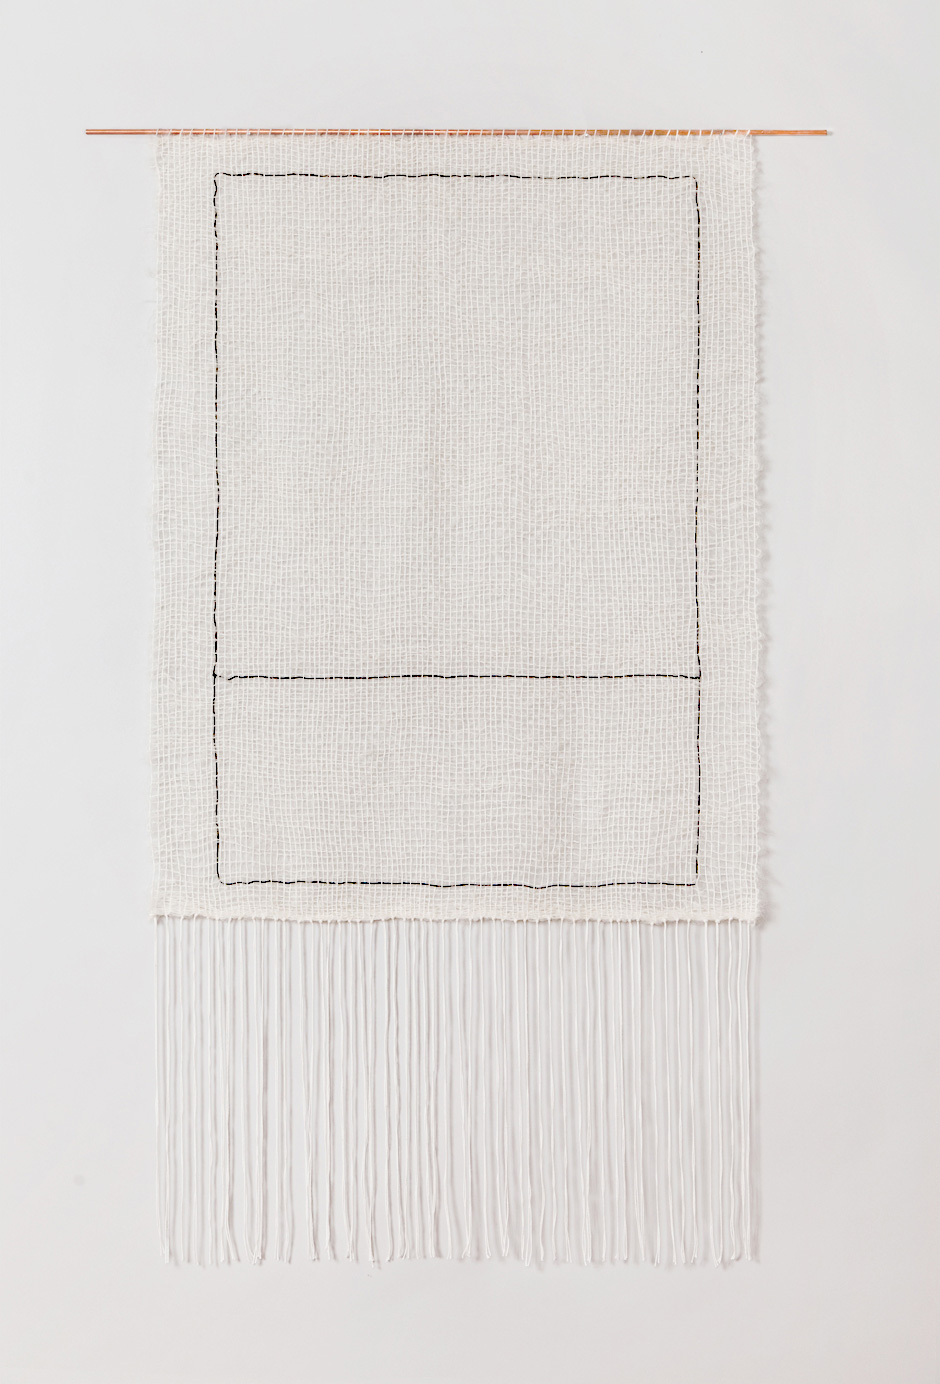 In The Fit For InsideOut Magazine Home Of My Dreams, Thereu0027s One Of These  Minimalist Brook U0026 Lyn Woven Hangings At The End Of The Hallway. Texture,  Baby.